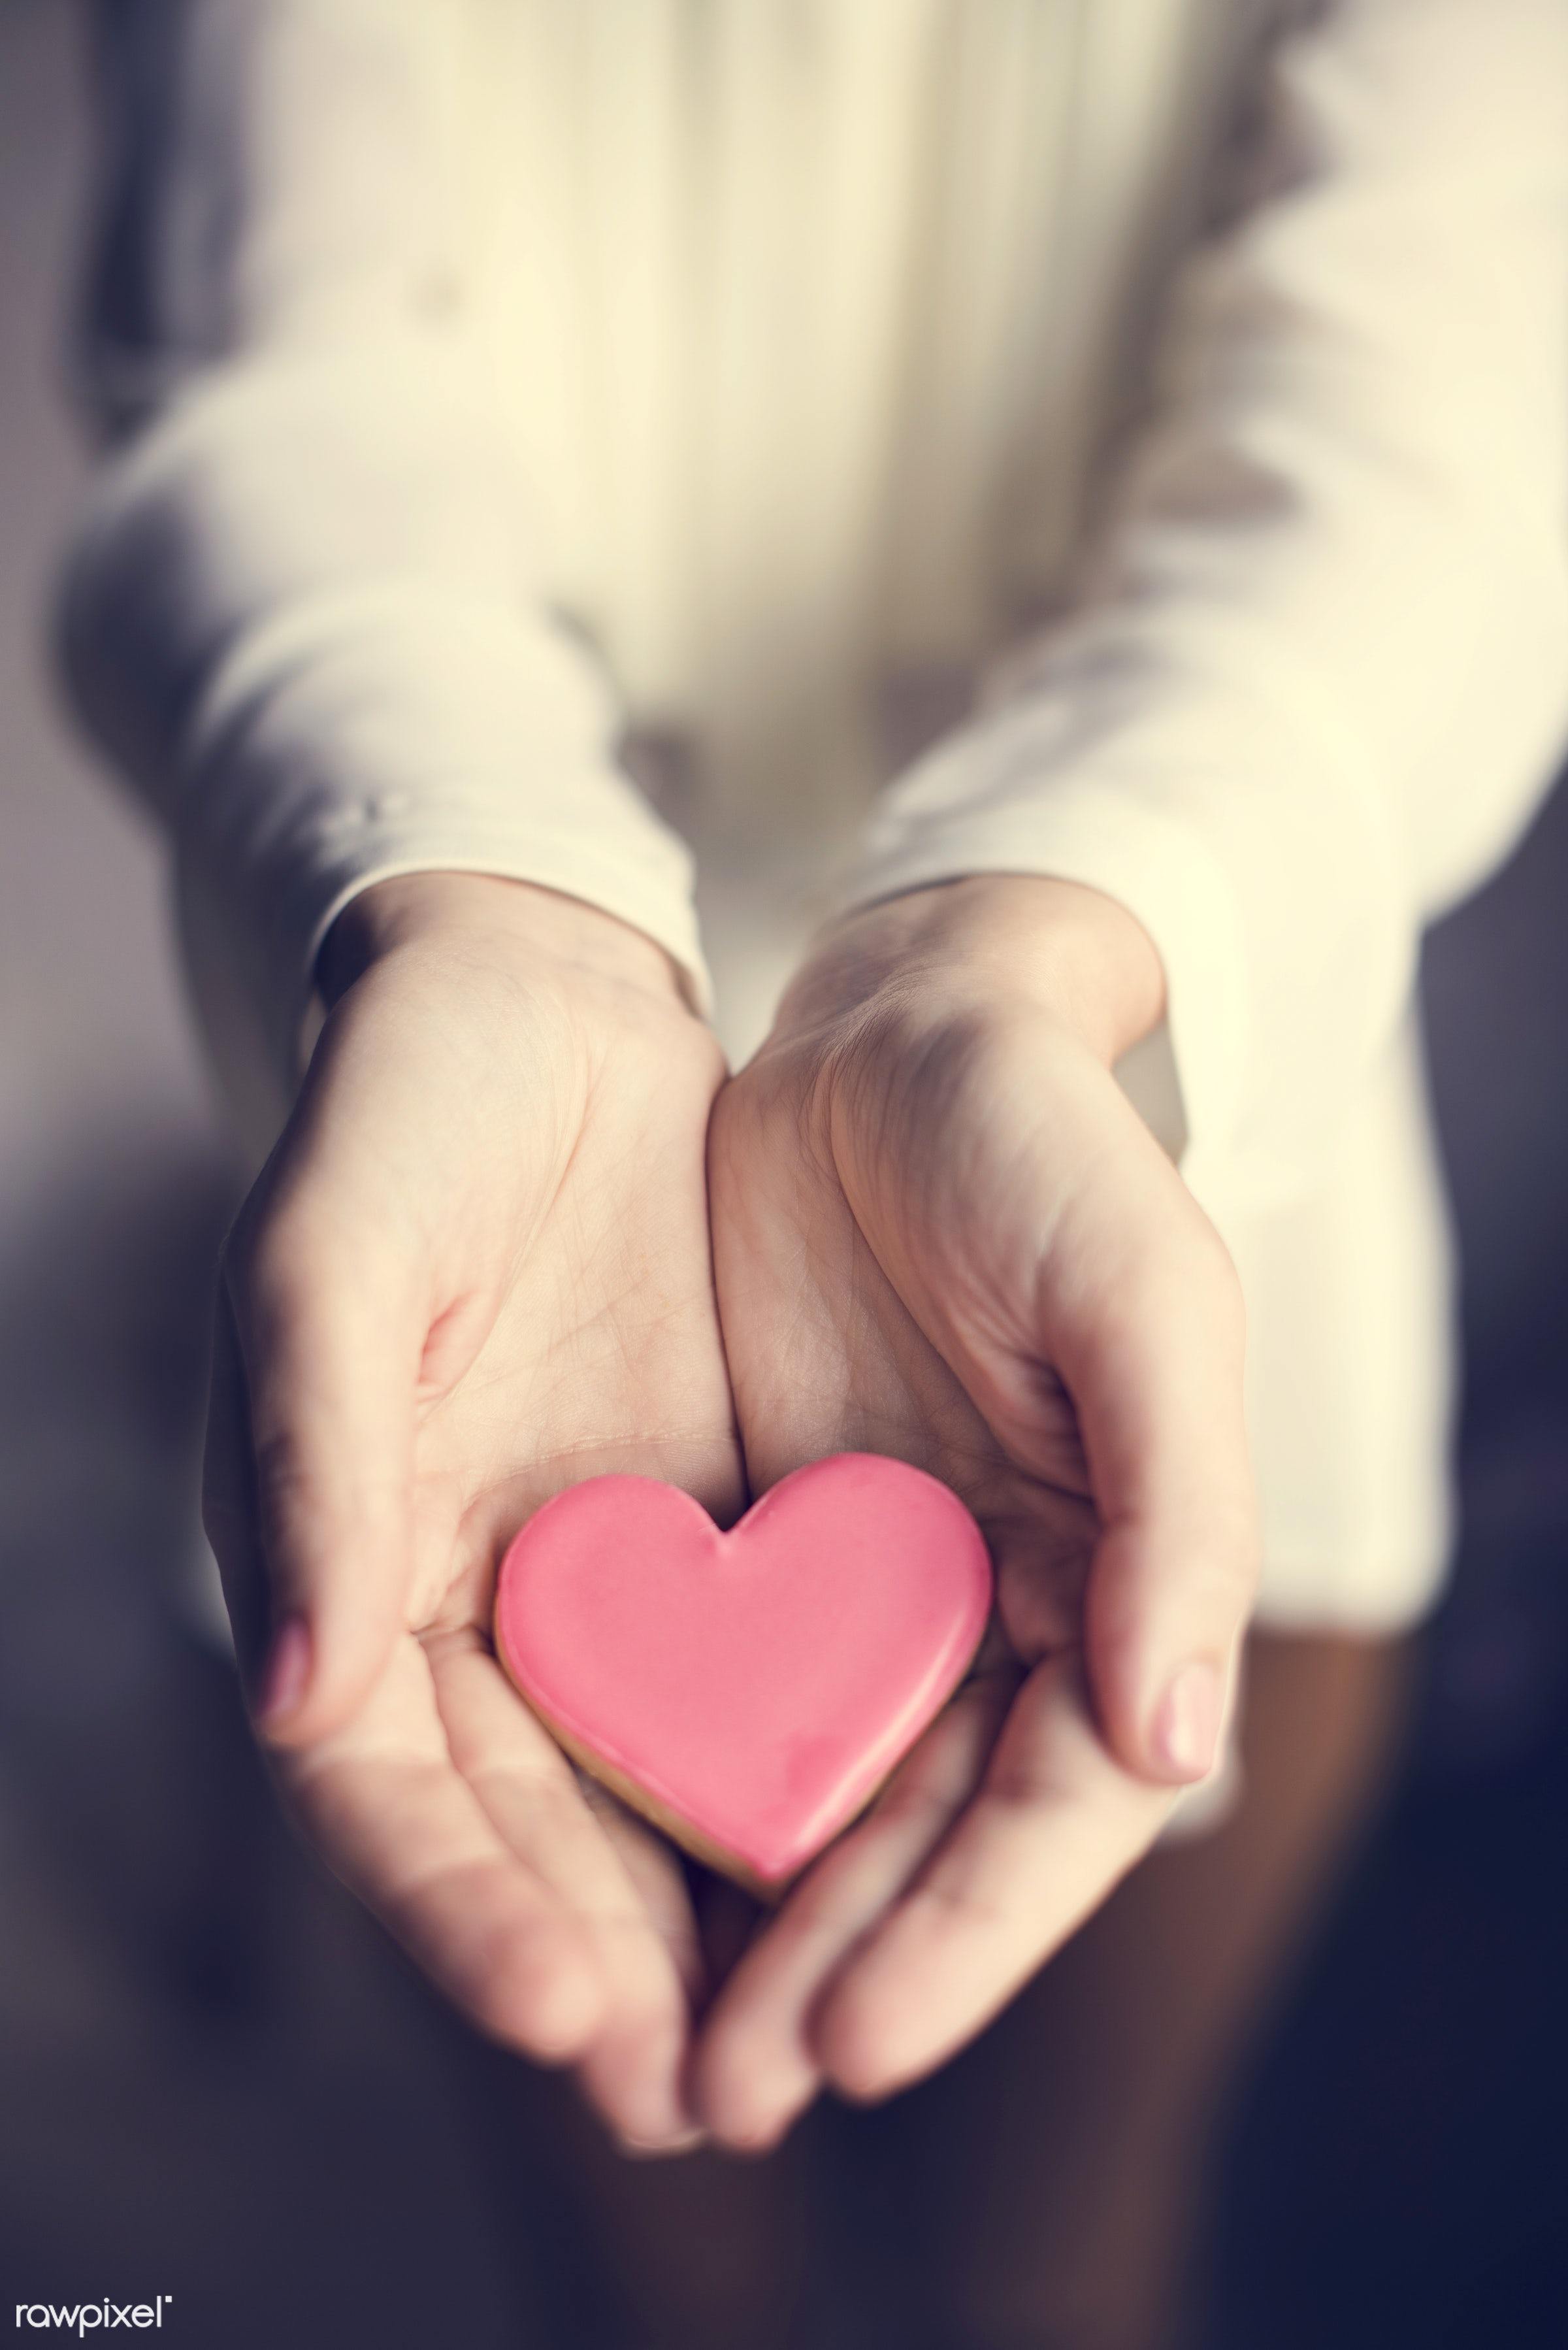 person, holding, people, baked, love, girl, bakery, hands, woman, pink, cookies, carry, dessert, heart, romance, human hand...